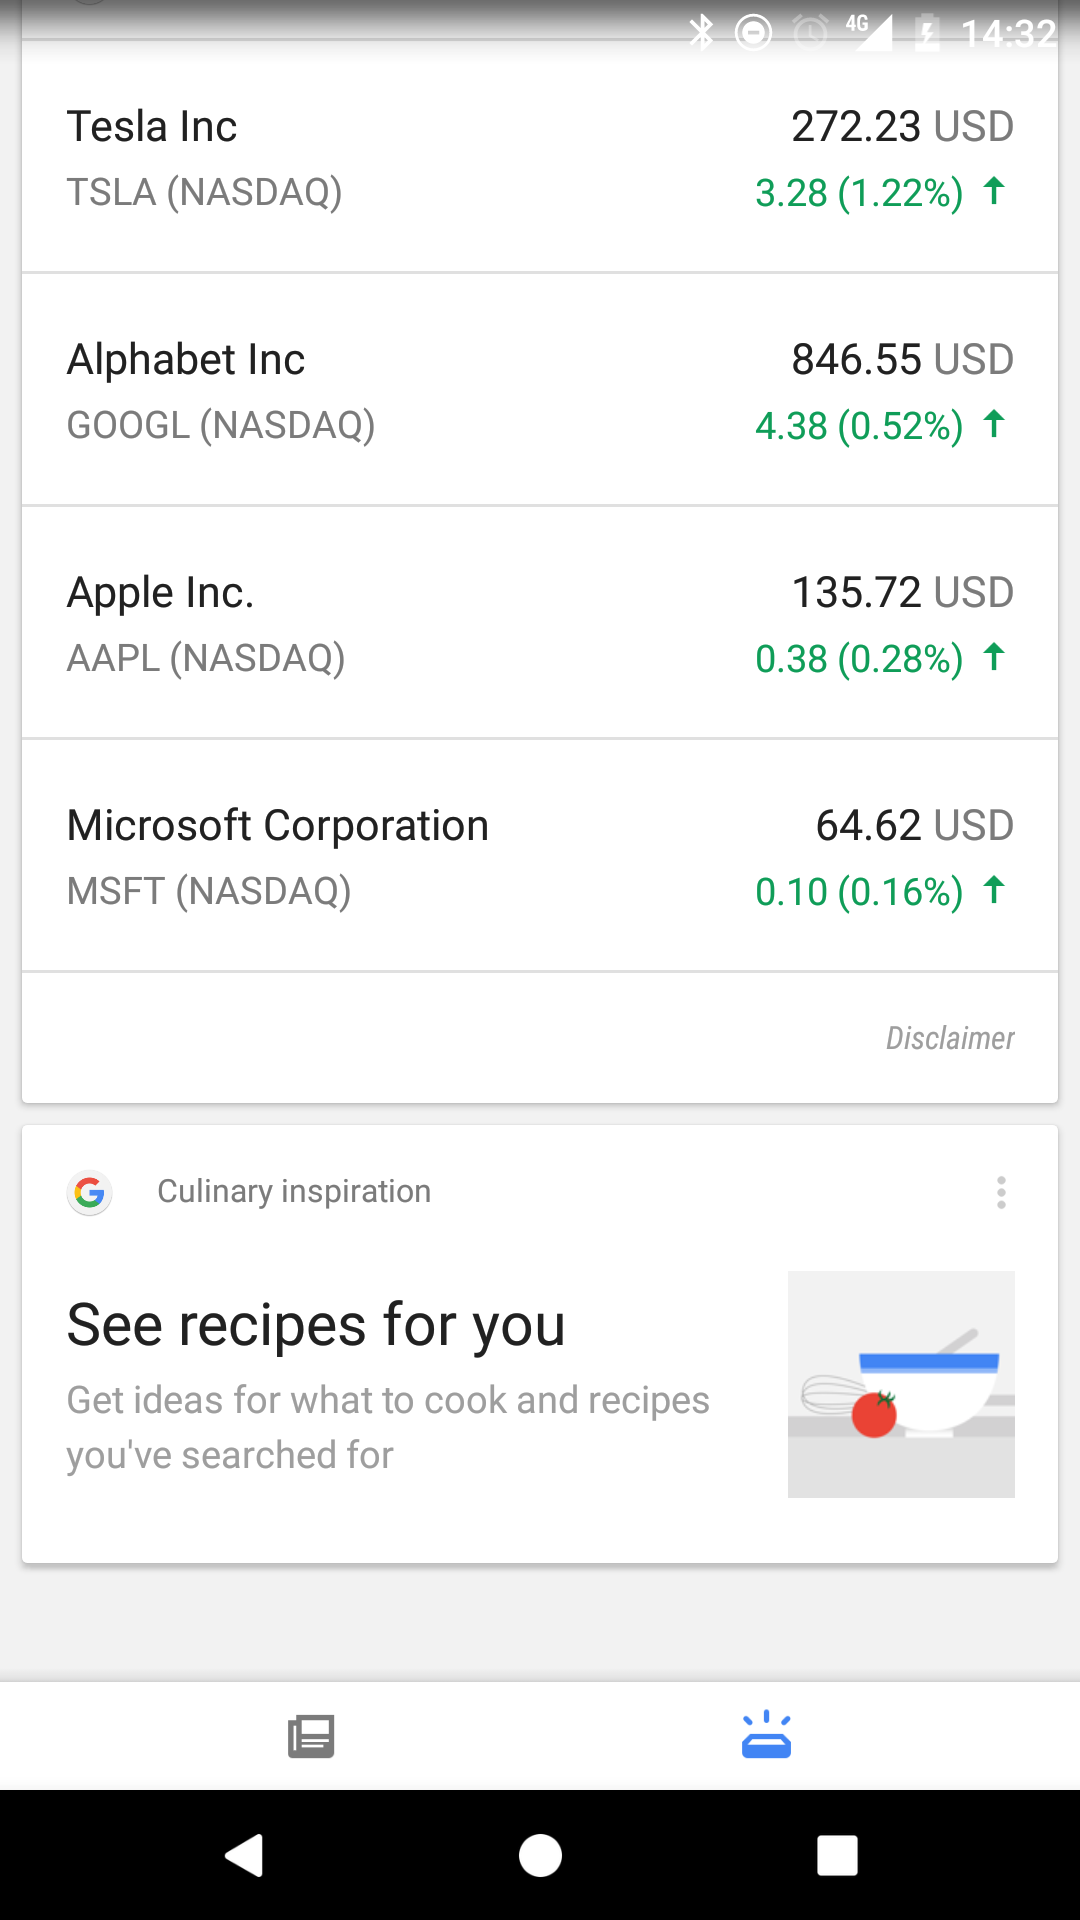 New Google Cooking Cards Spotted in Google Now